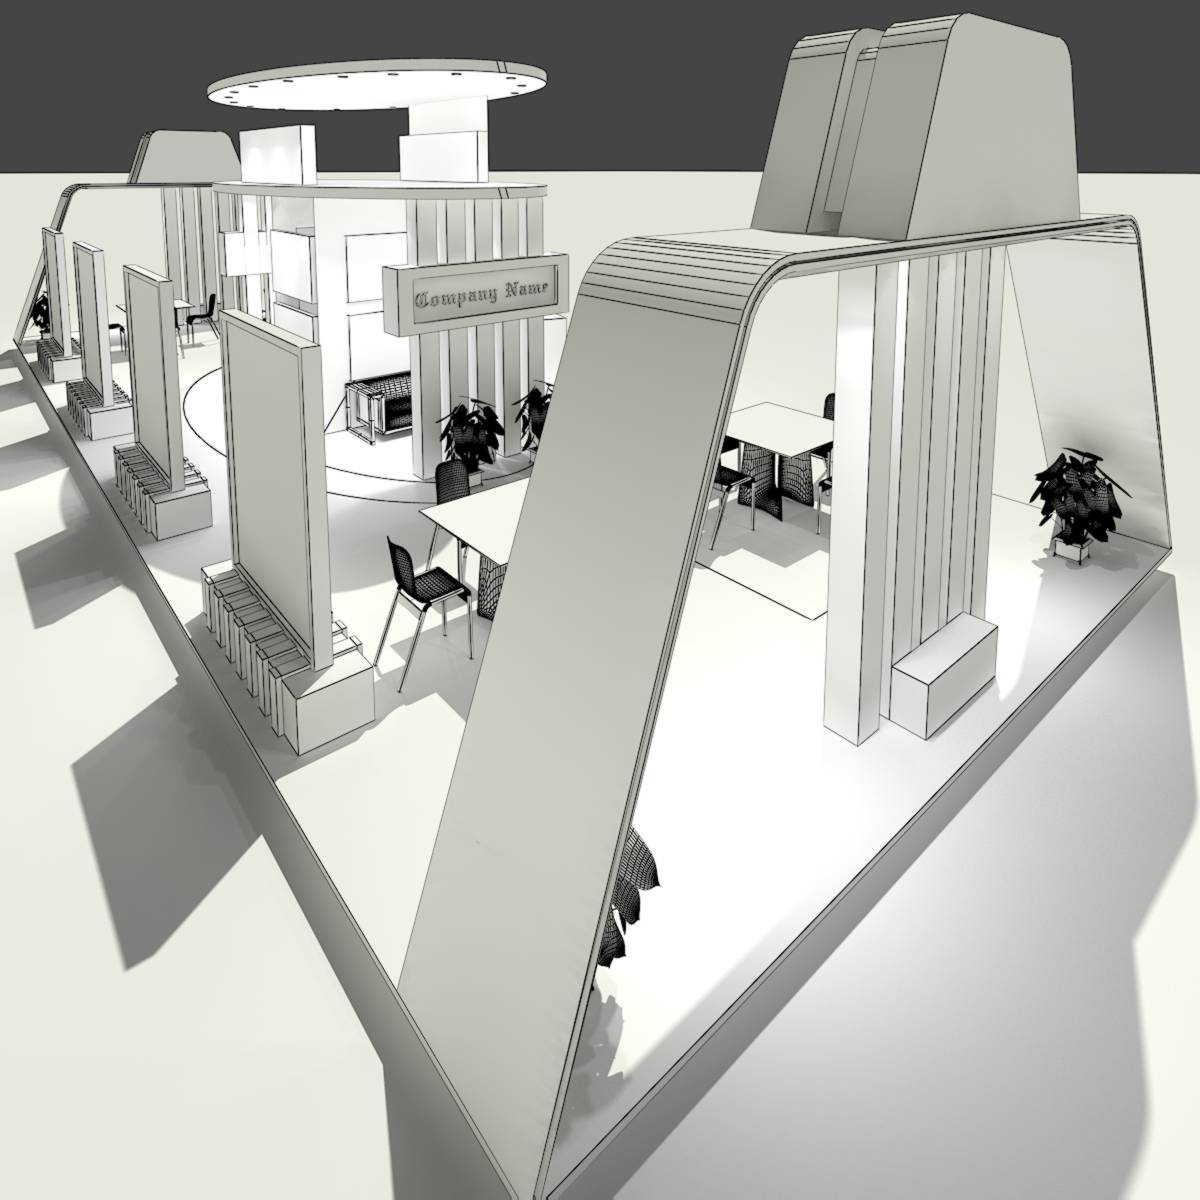 Exhibition Stand 3d Model Free : Exhibition stand d model buy